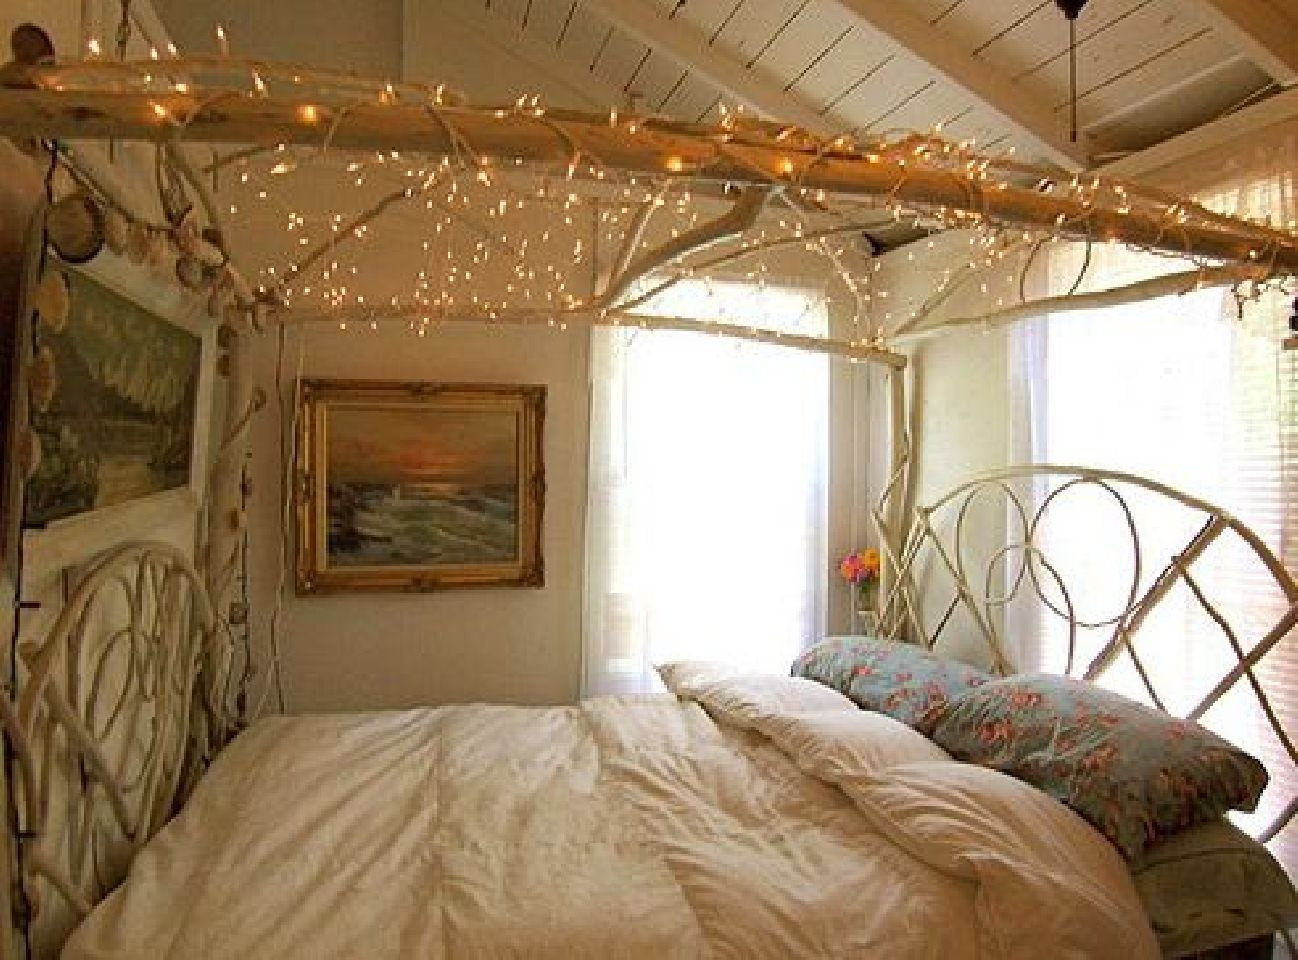 Christmas Lights In Bedroom  DIY Inspirations A Canopy Bed • Breakfast With Audrey